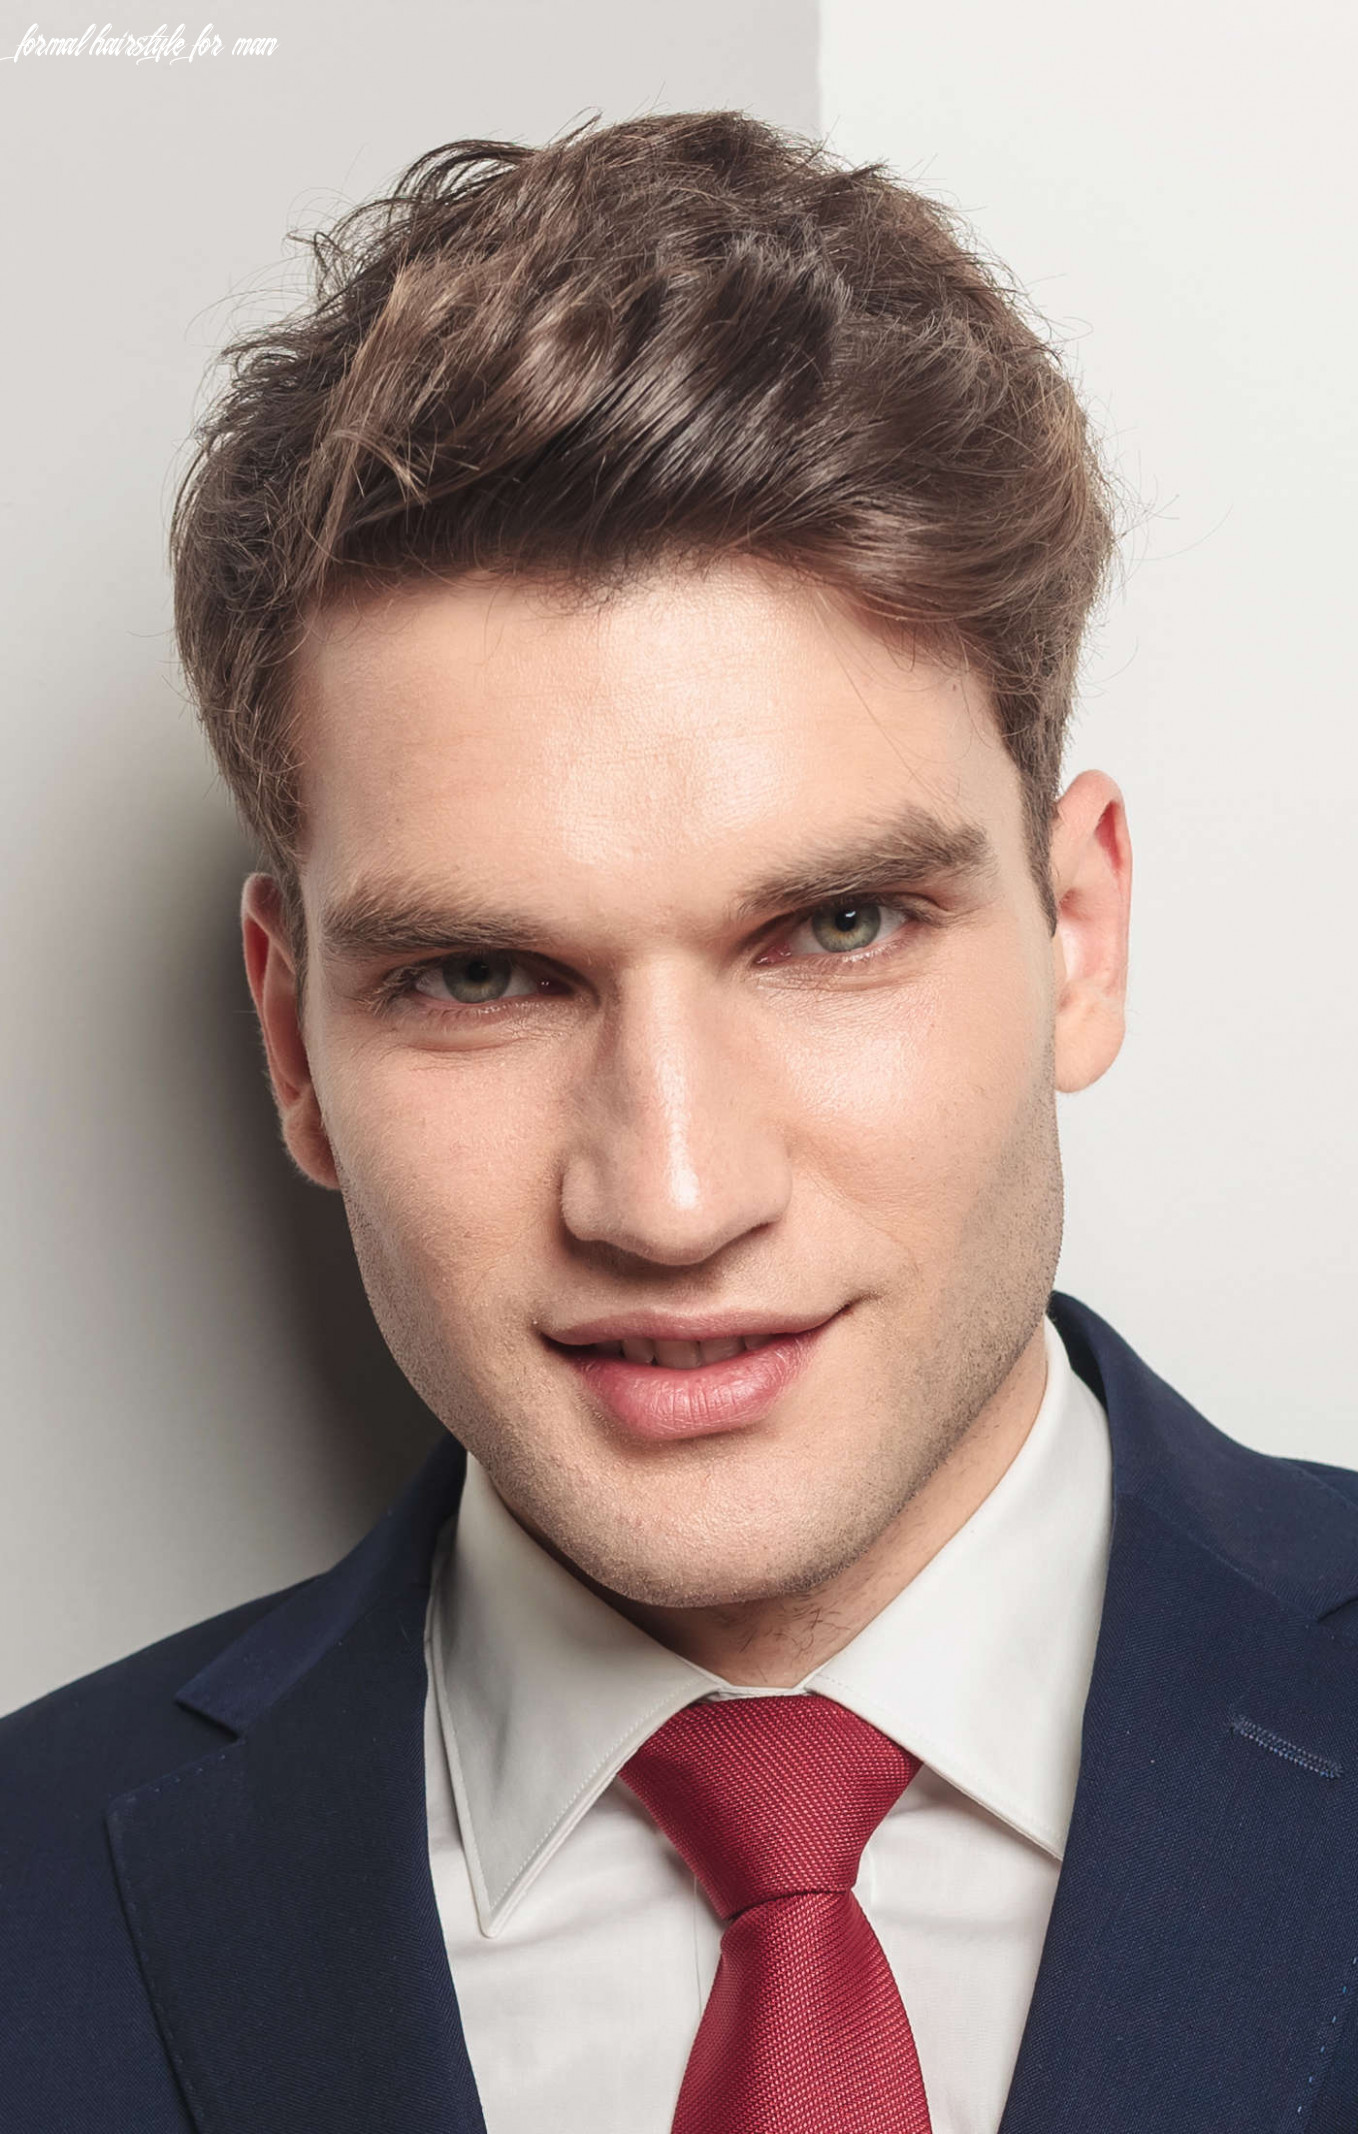 Top 12 business hairstyles for men formal hairstyle for man